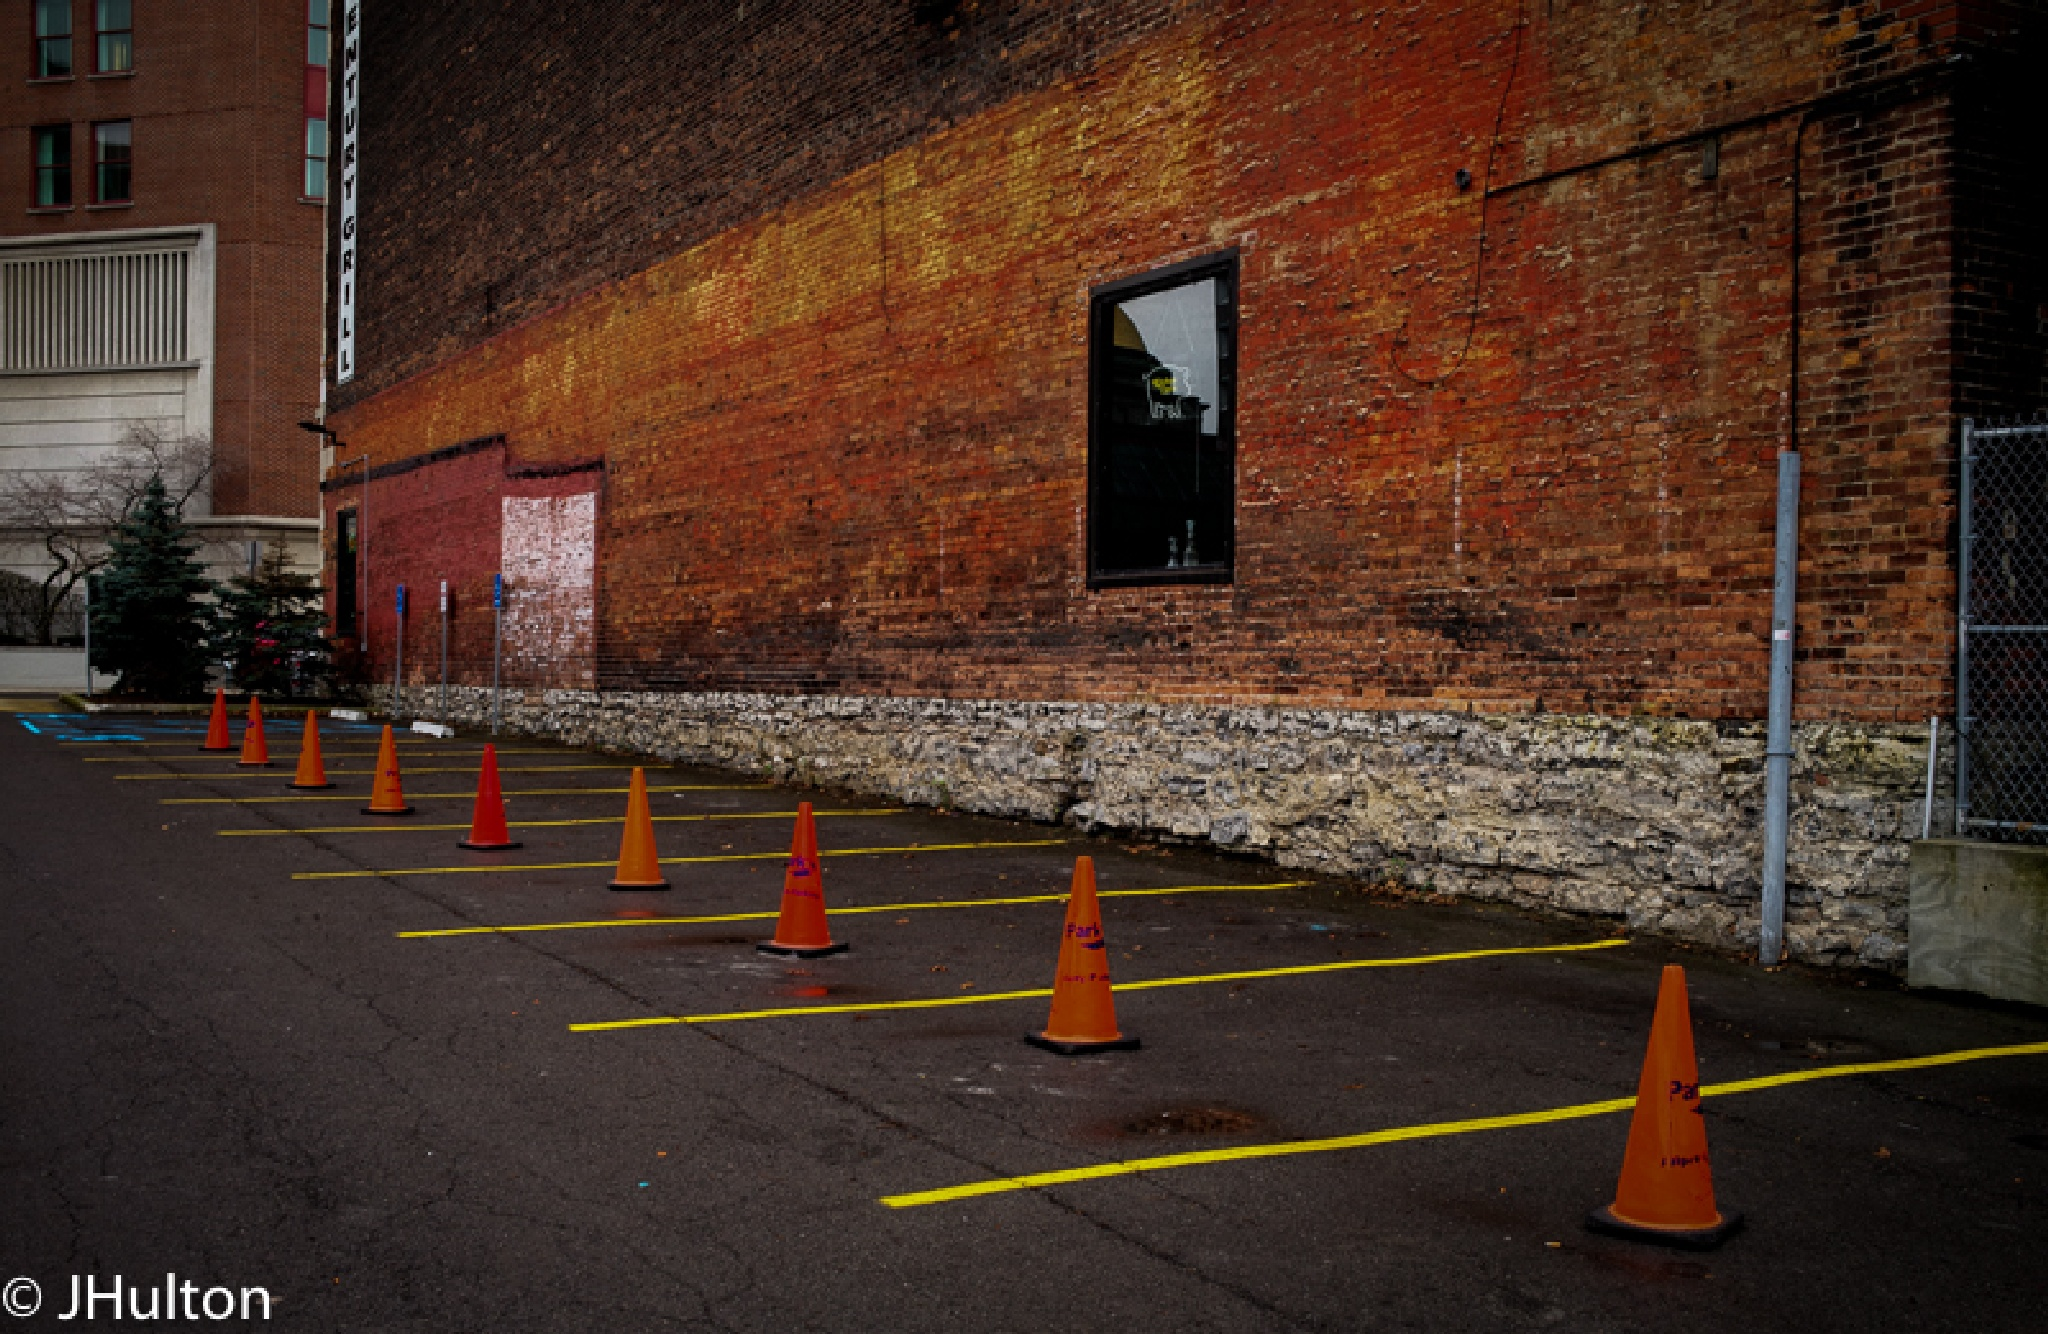 Standing Cones by jhulton